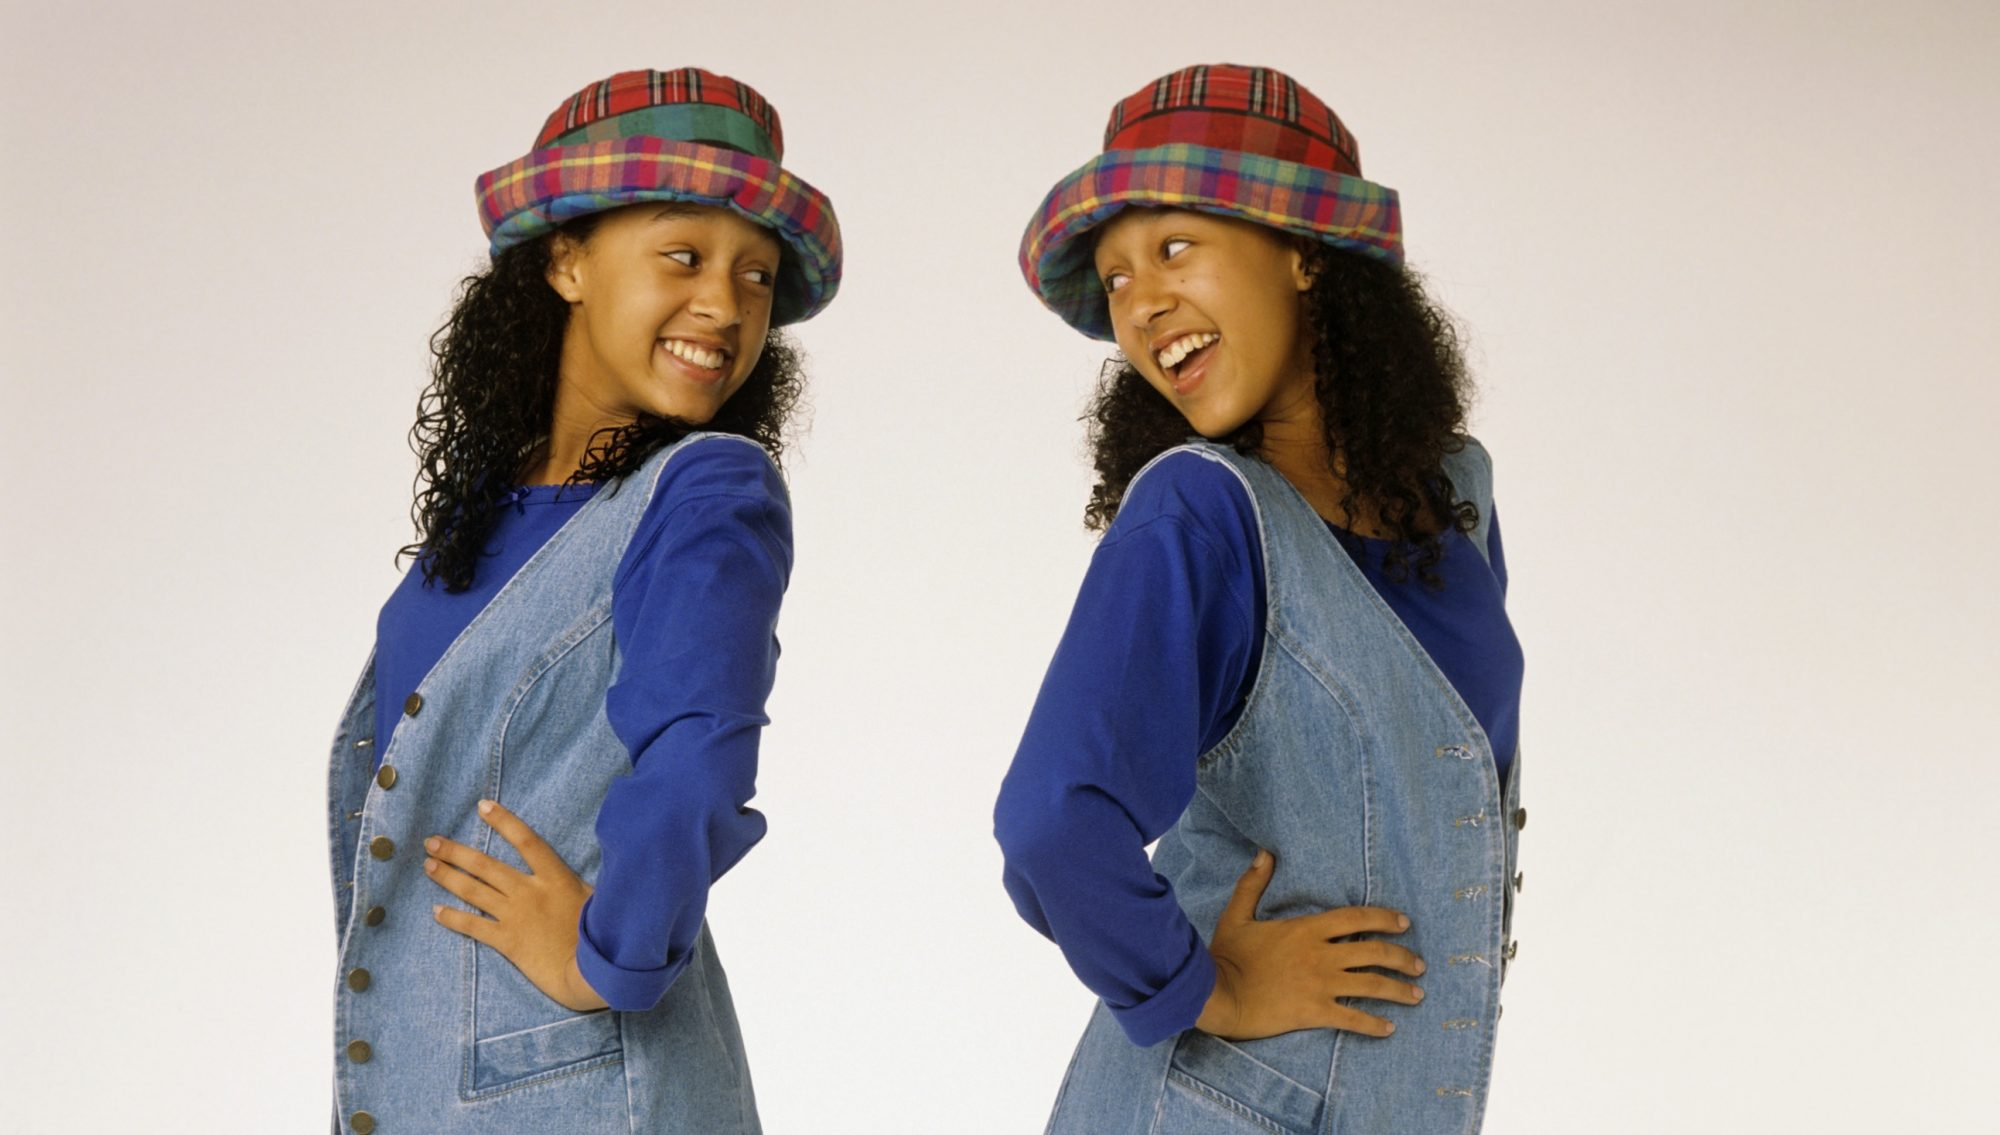 sister sister on netflix, tia and tamara mowry